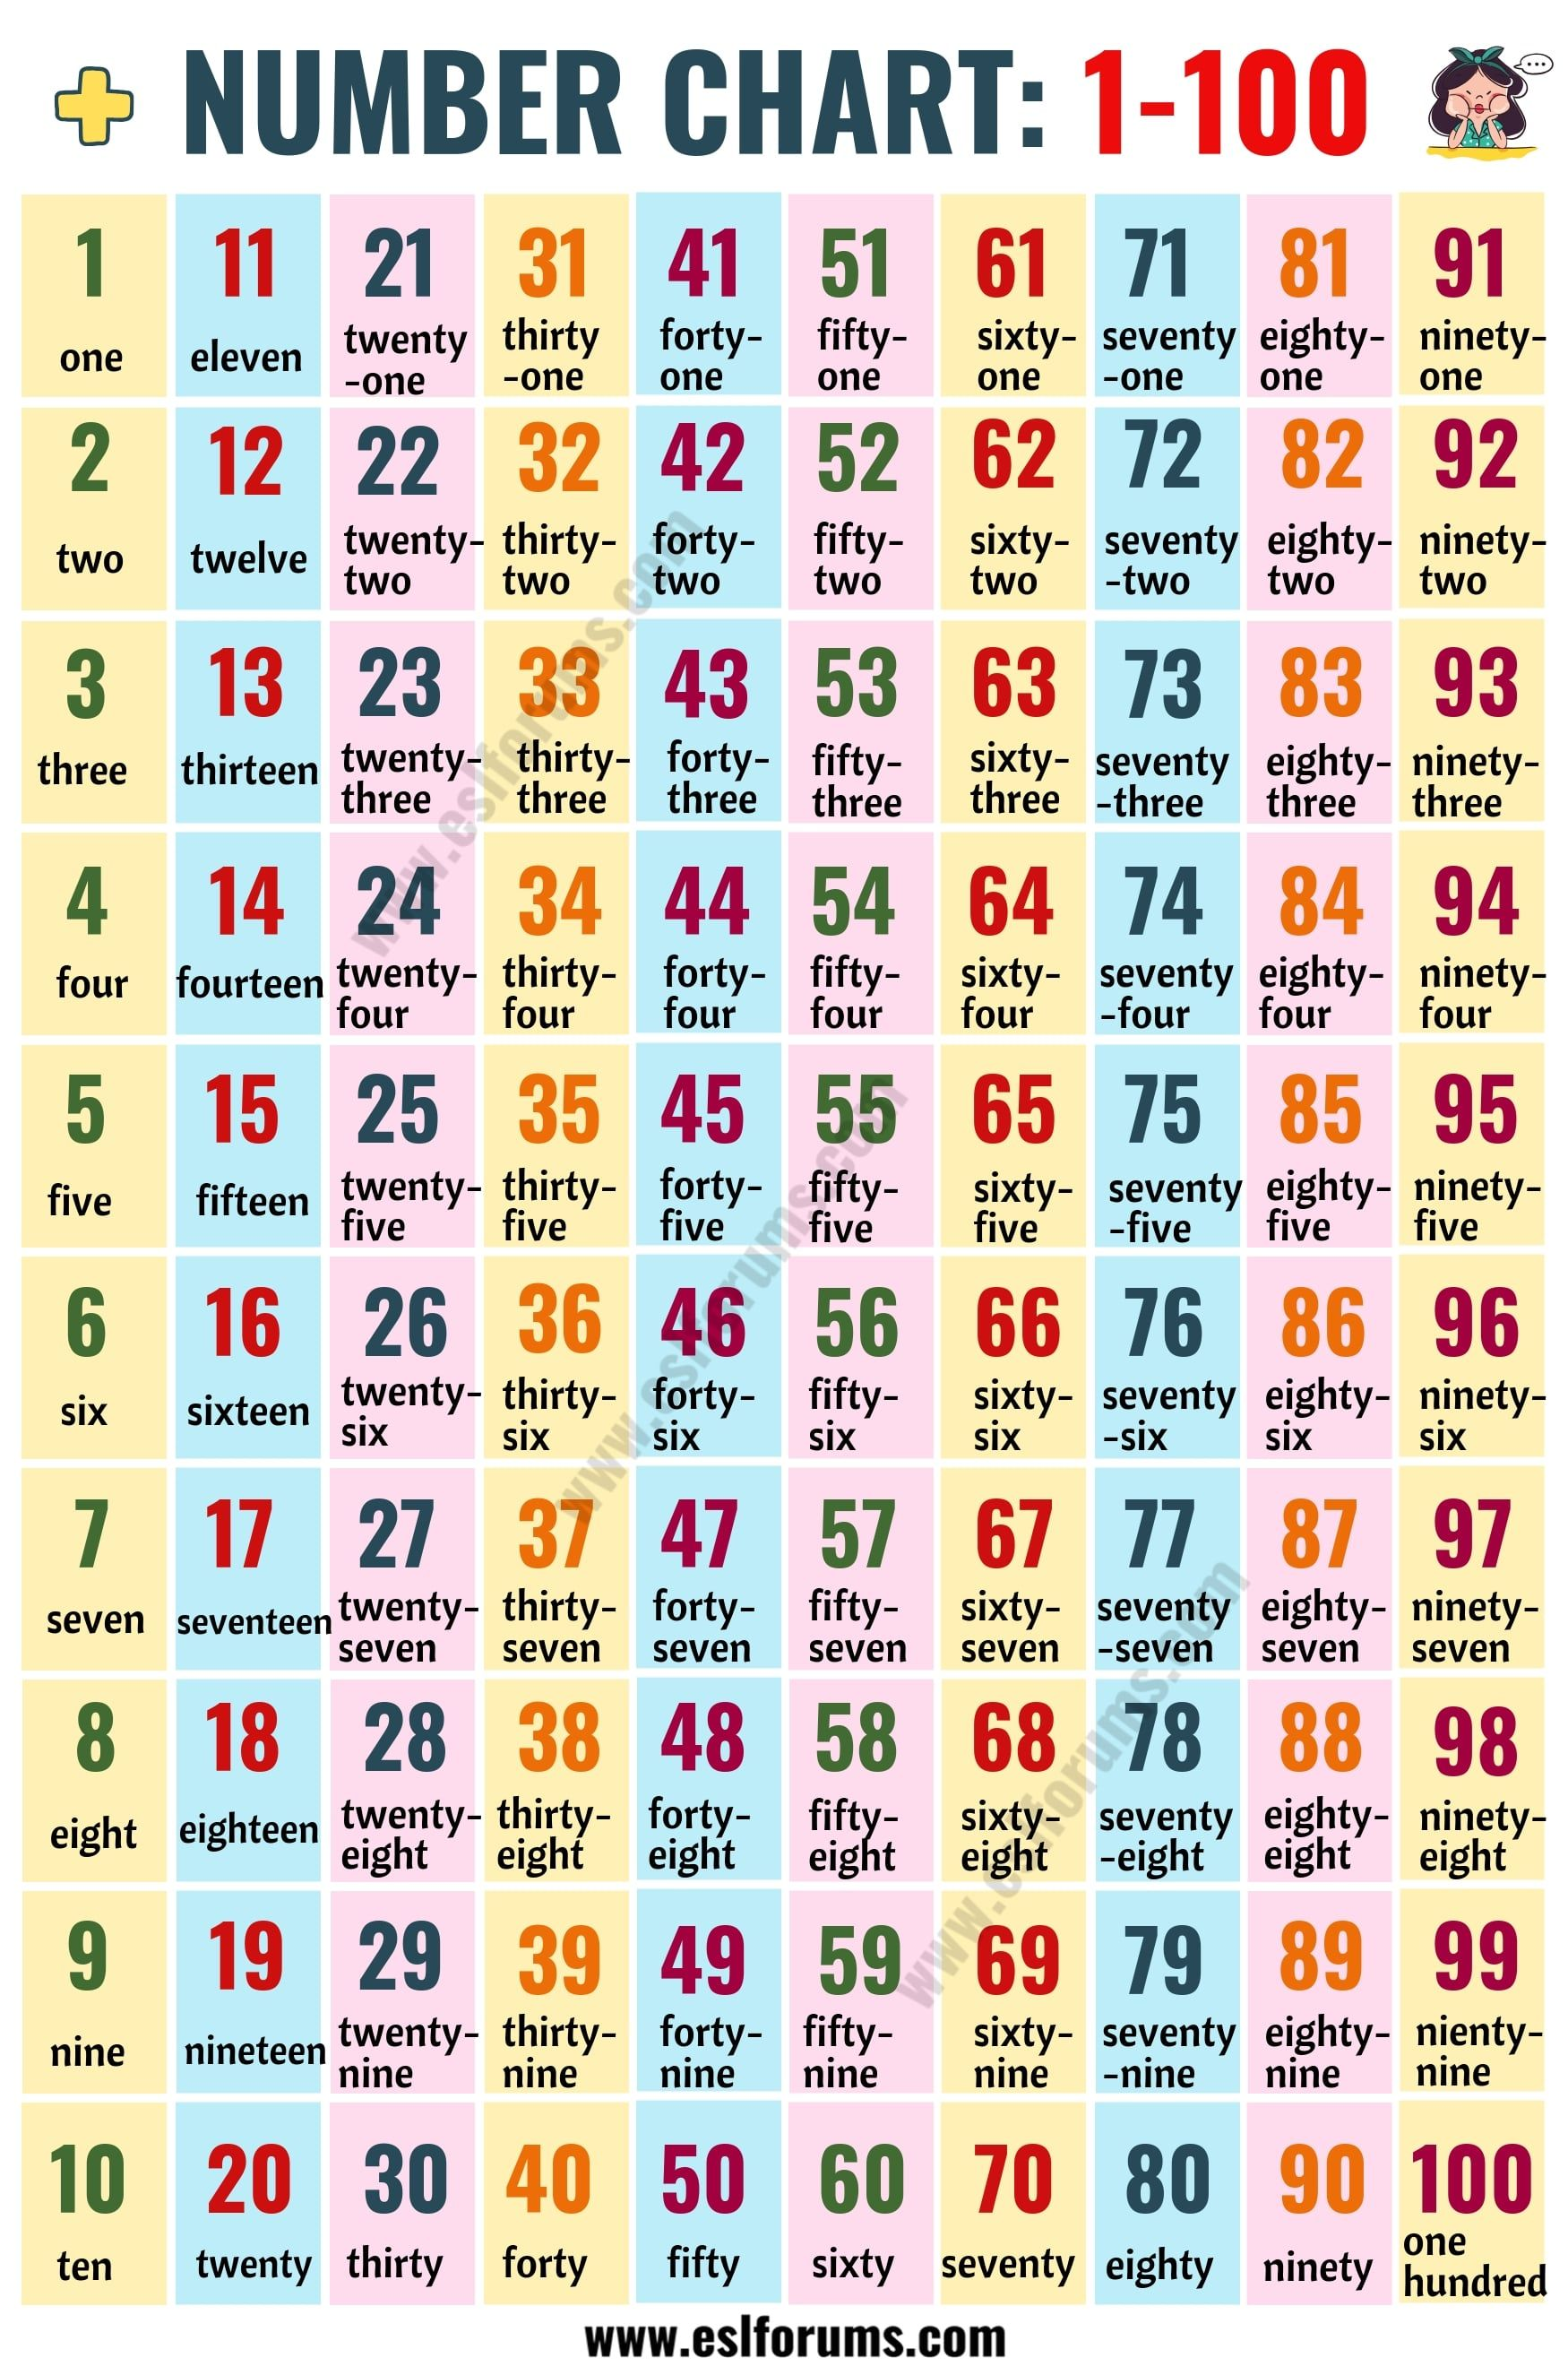 Hundreds Chart Number Chart 1 100 In English Esl Forums Number Chart Hundreds Chart Number Words Chart